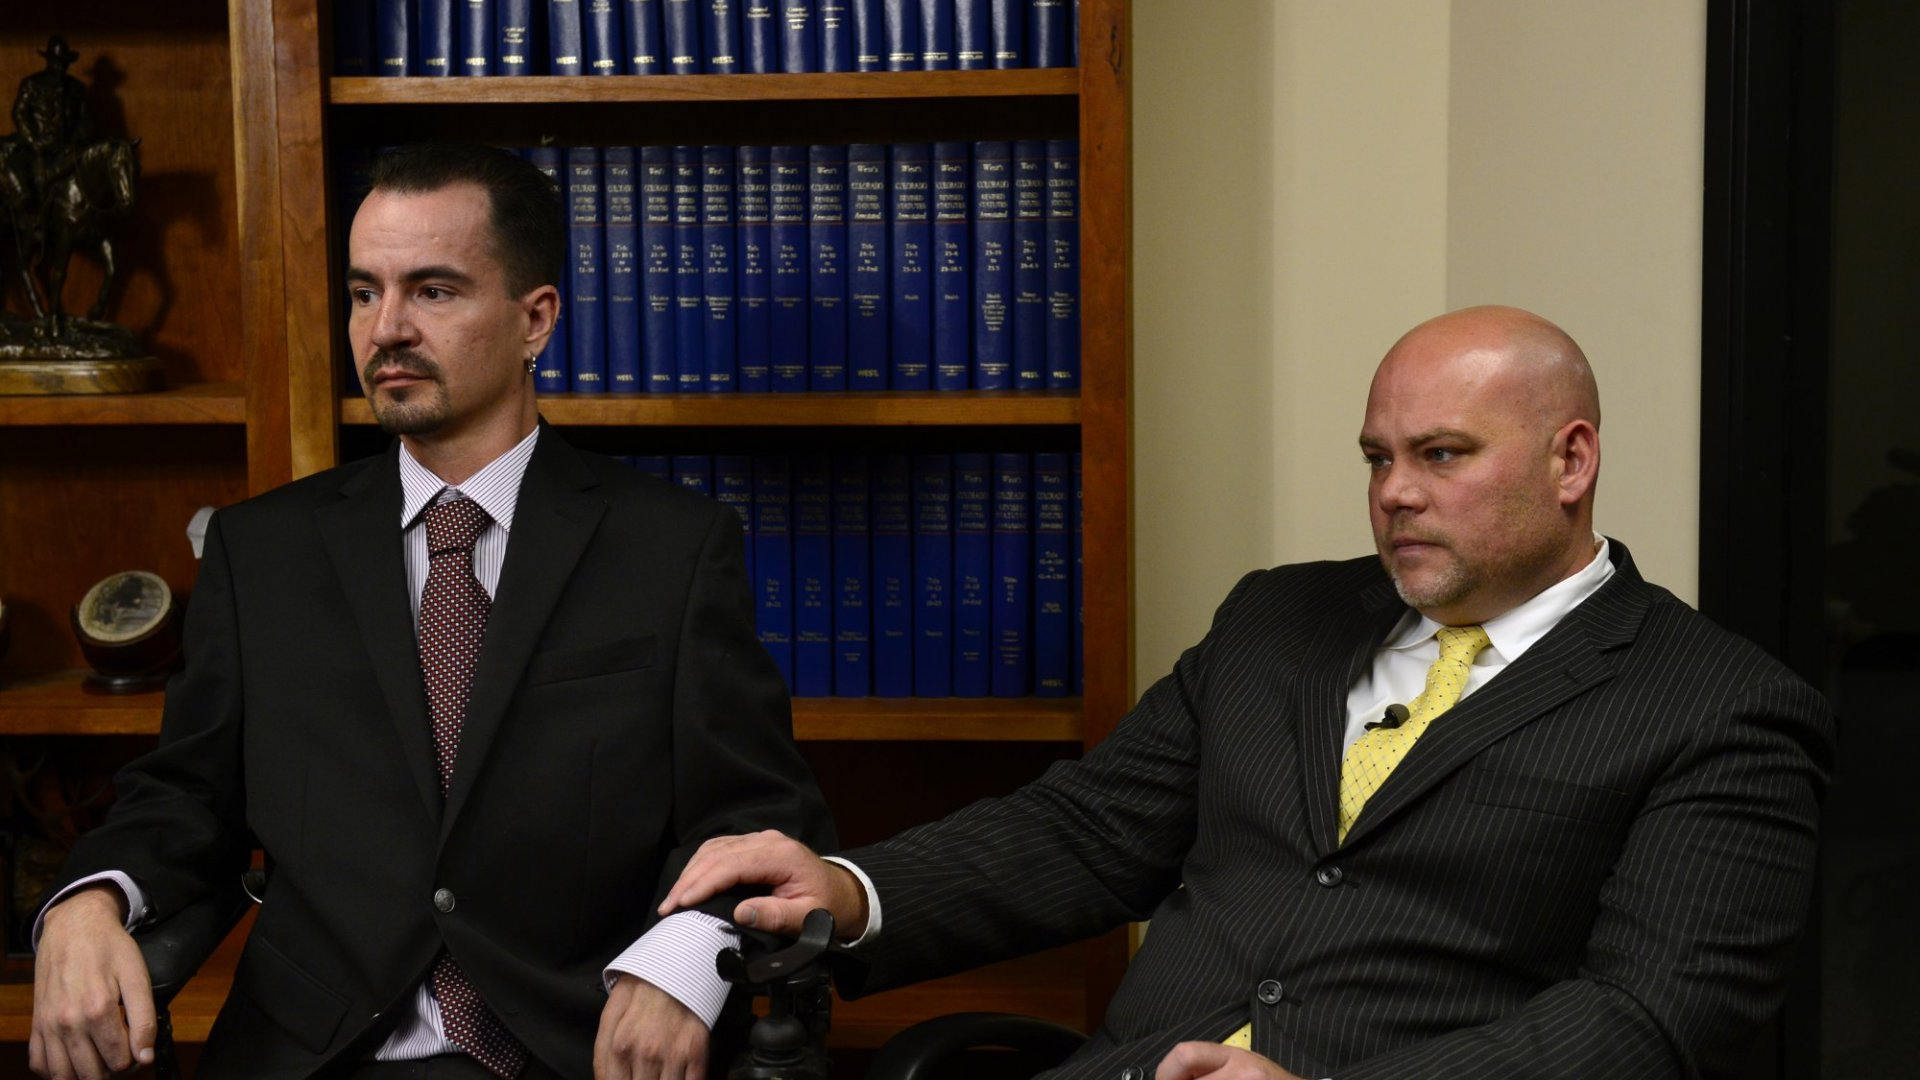 Brandon Coats, left, who is a quadriplegic, was fired for testing positive for marijuana. In 2015, the Colorado Supreme Court upheld a lower court's decision to allow companies to terminate employees for using medical marijuana during non-work hours.